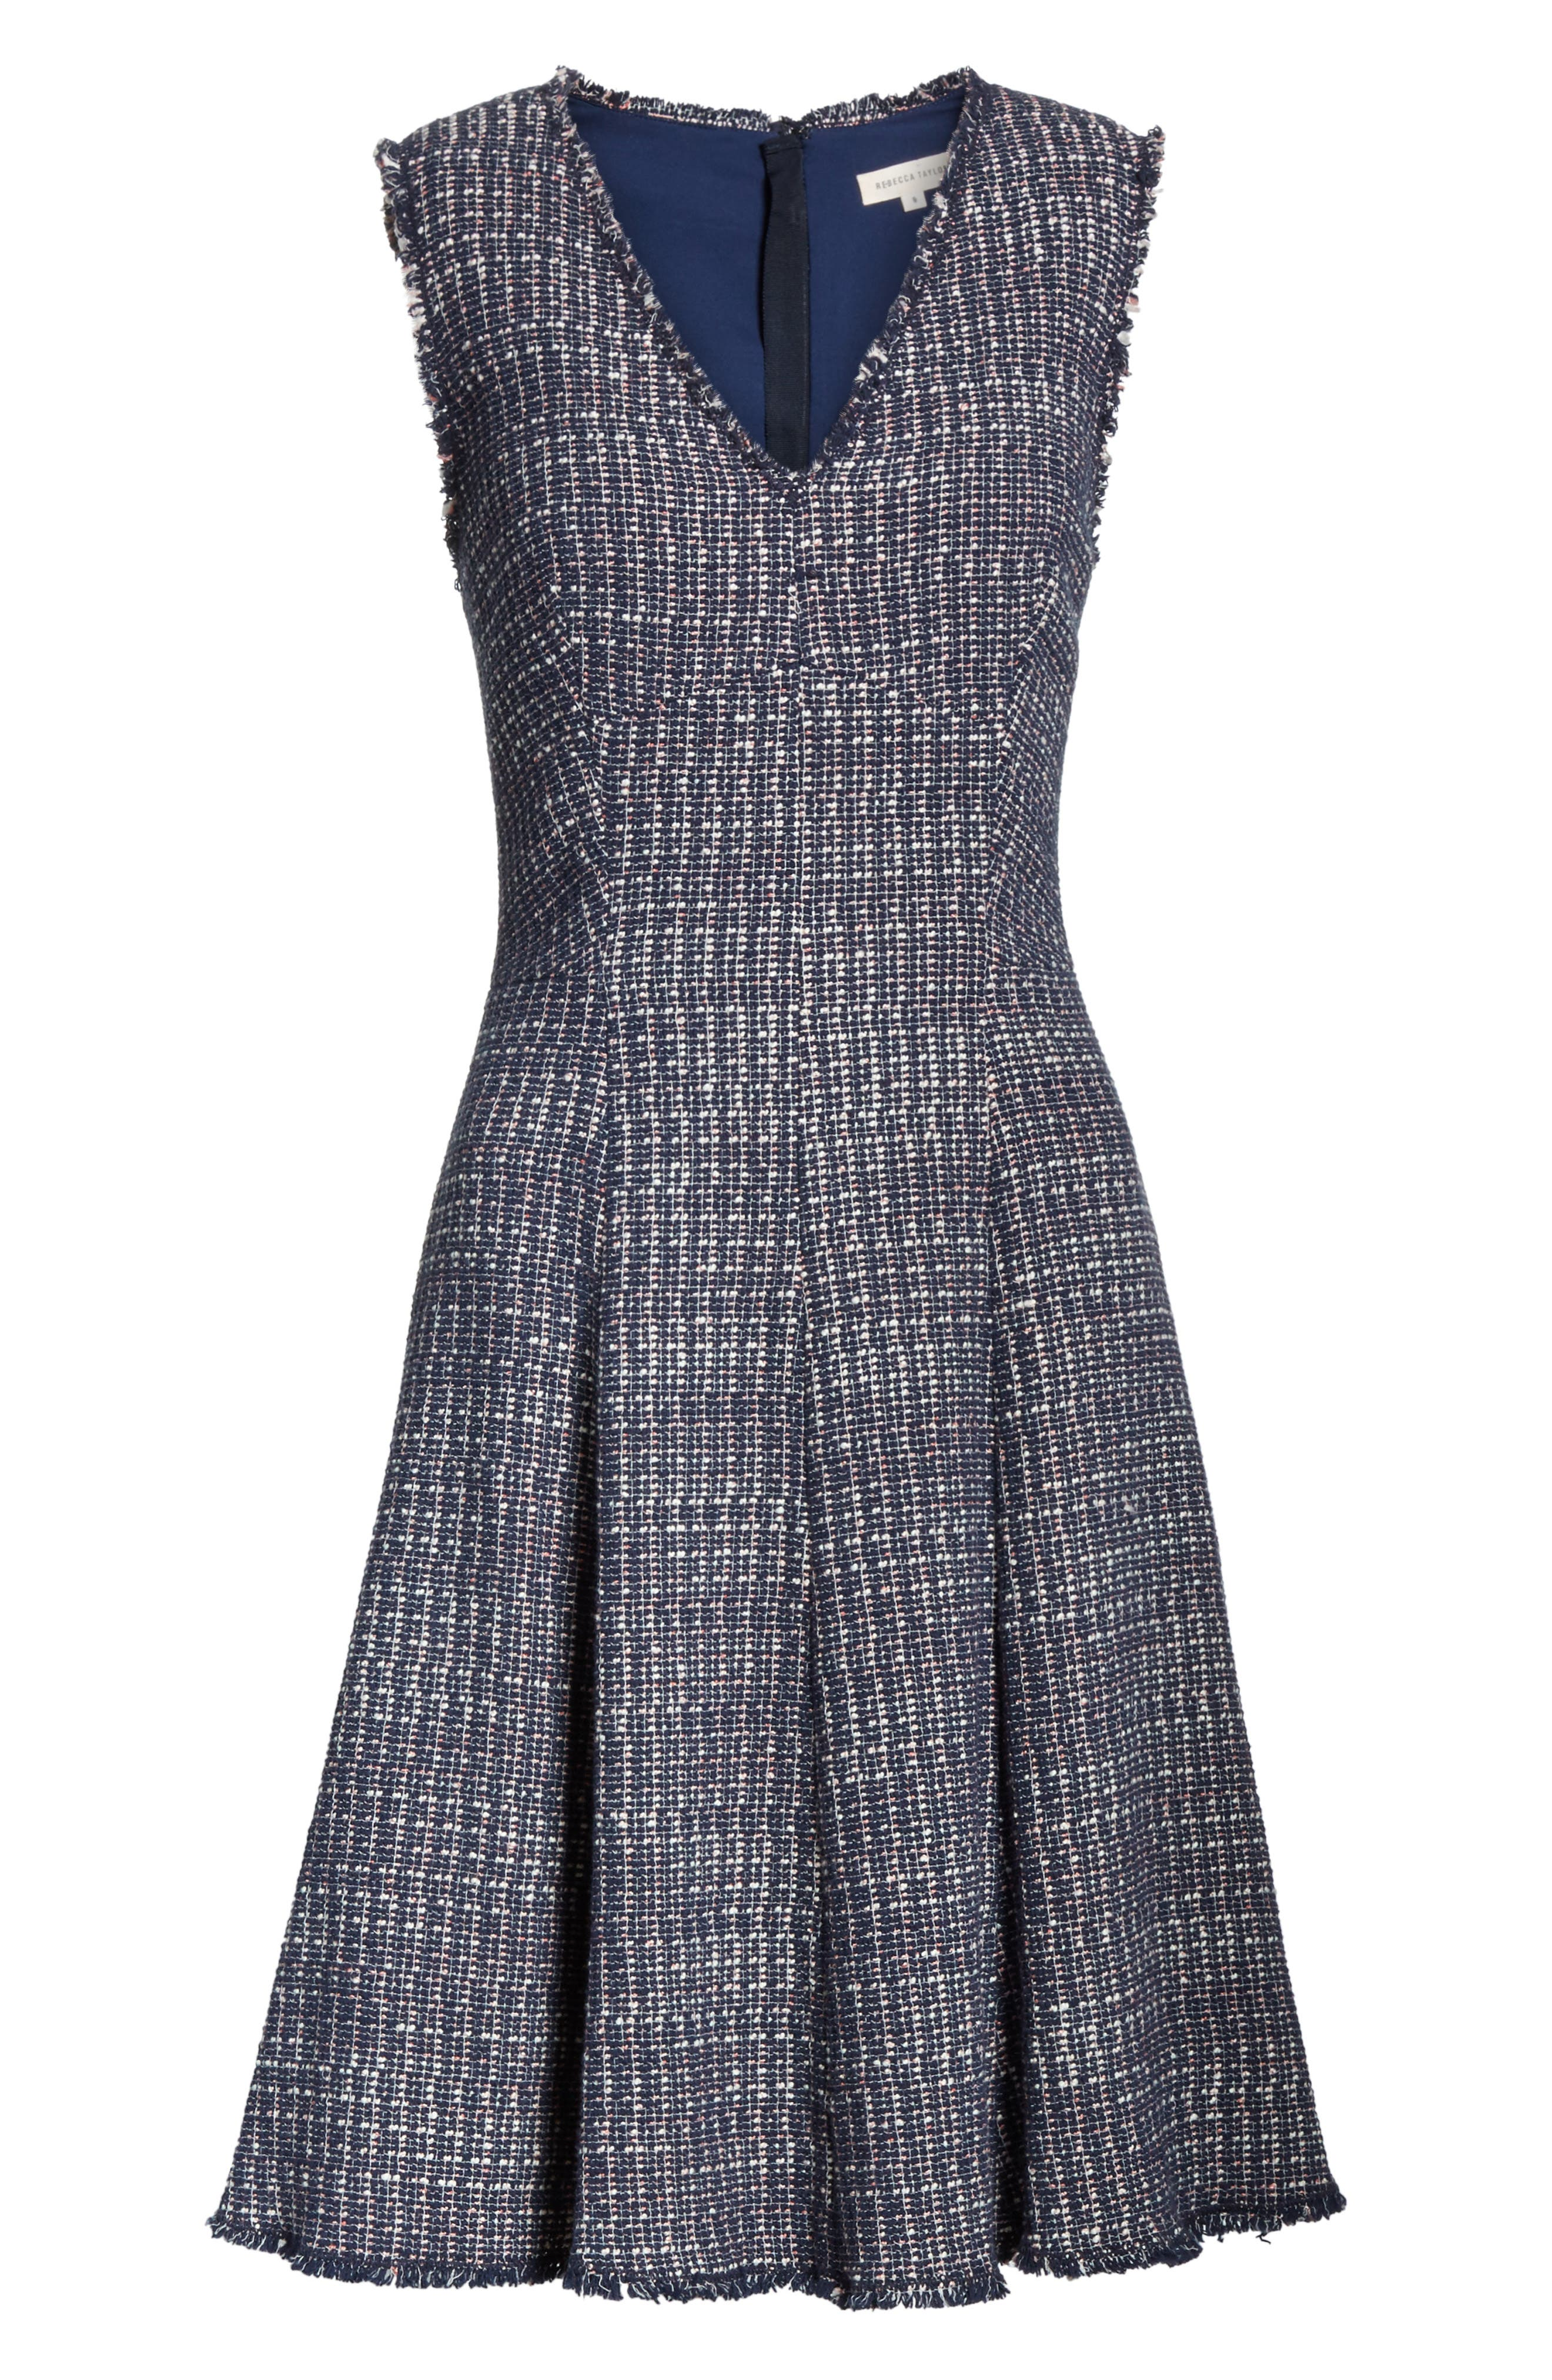 Multi Tweed Fit & Flare Dress,                             Alternate thumbnail 6, color,                             482